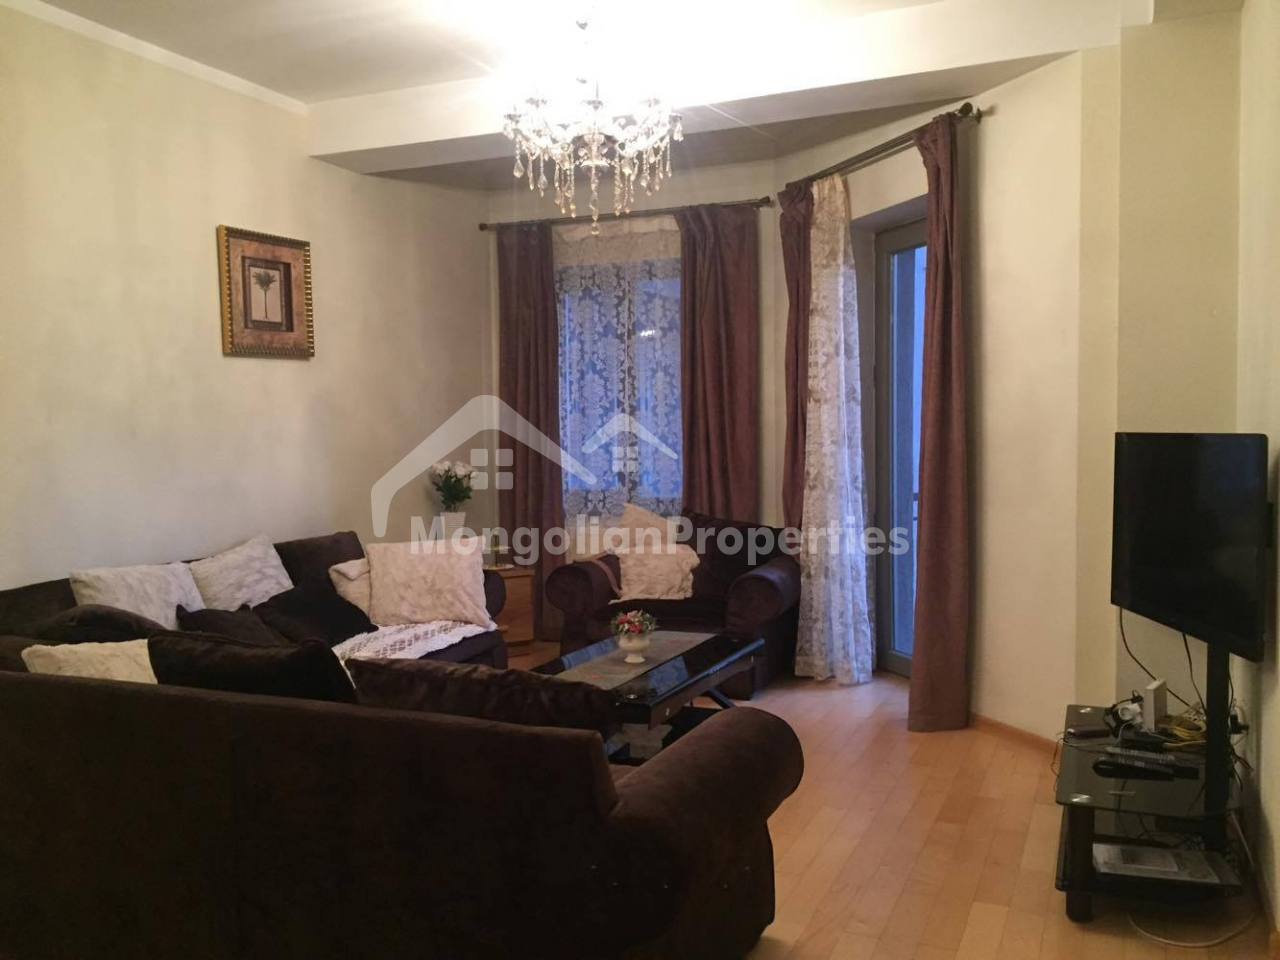 Comfortable 3 bedroom apartment is for rent at Regency Residence